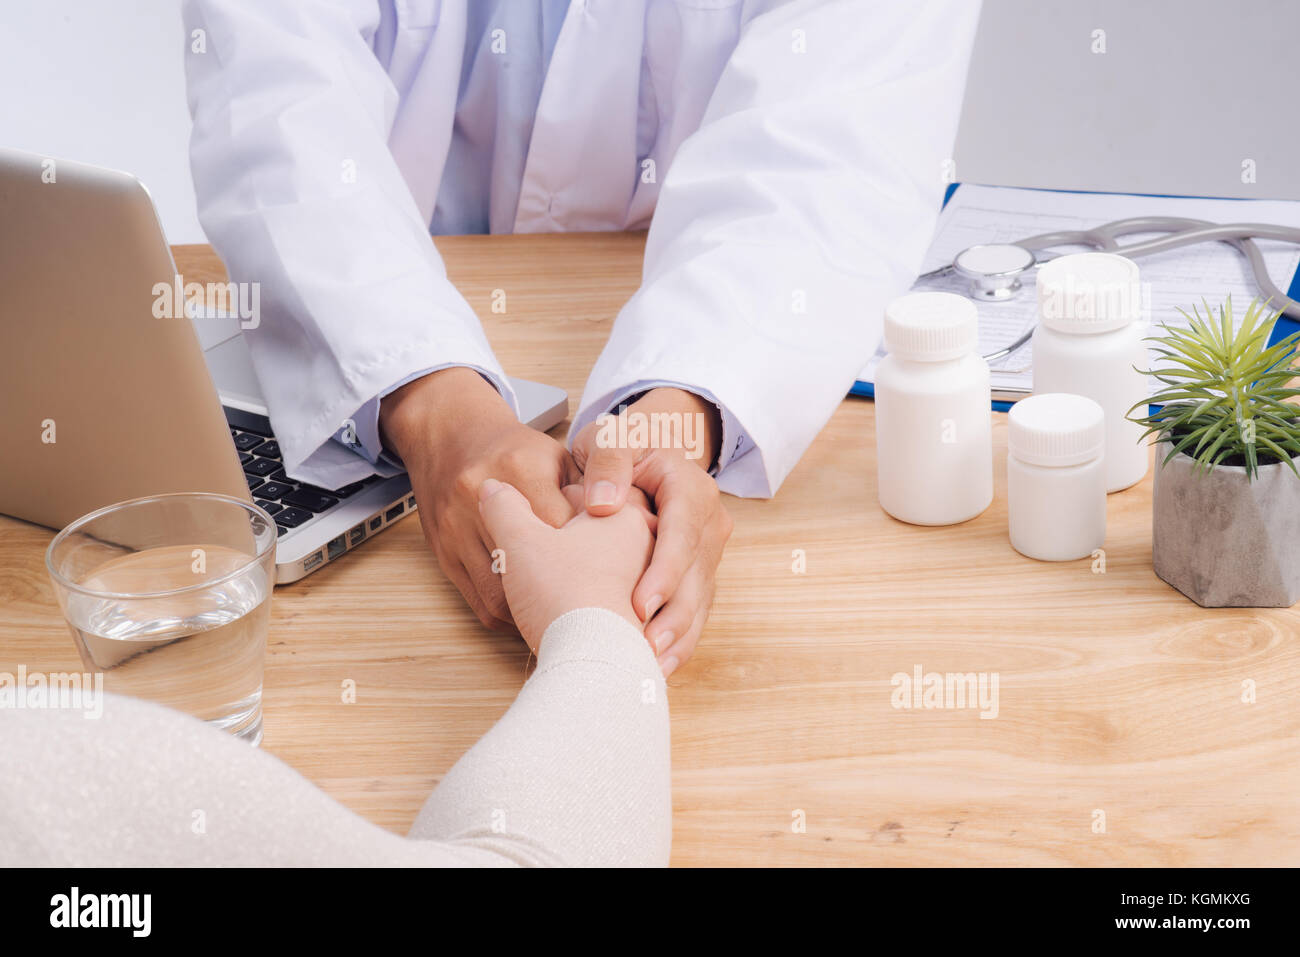 Friendly doctor hands holding patient hand sitting at the desk for encouragement, empathy, cheering and support - Stock Image